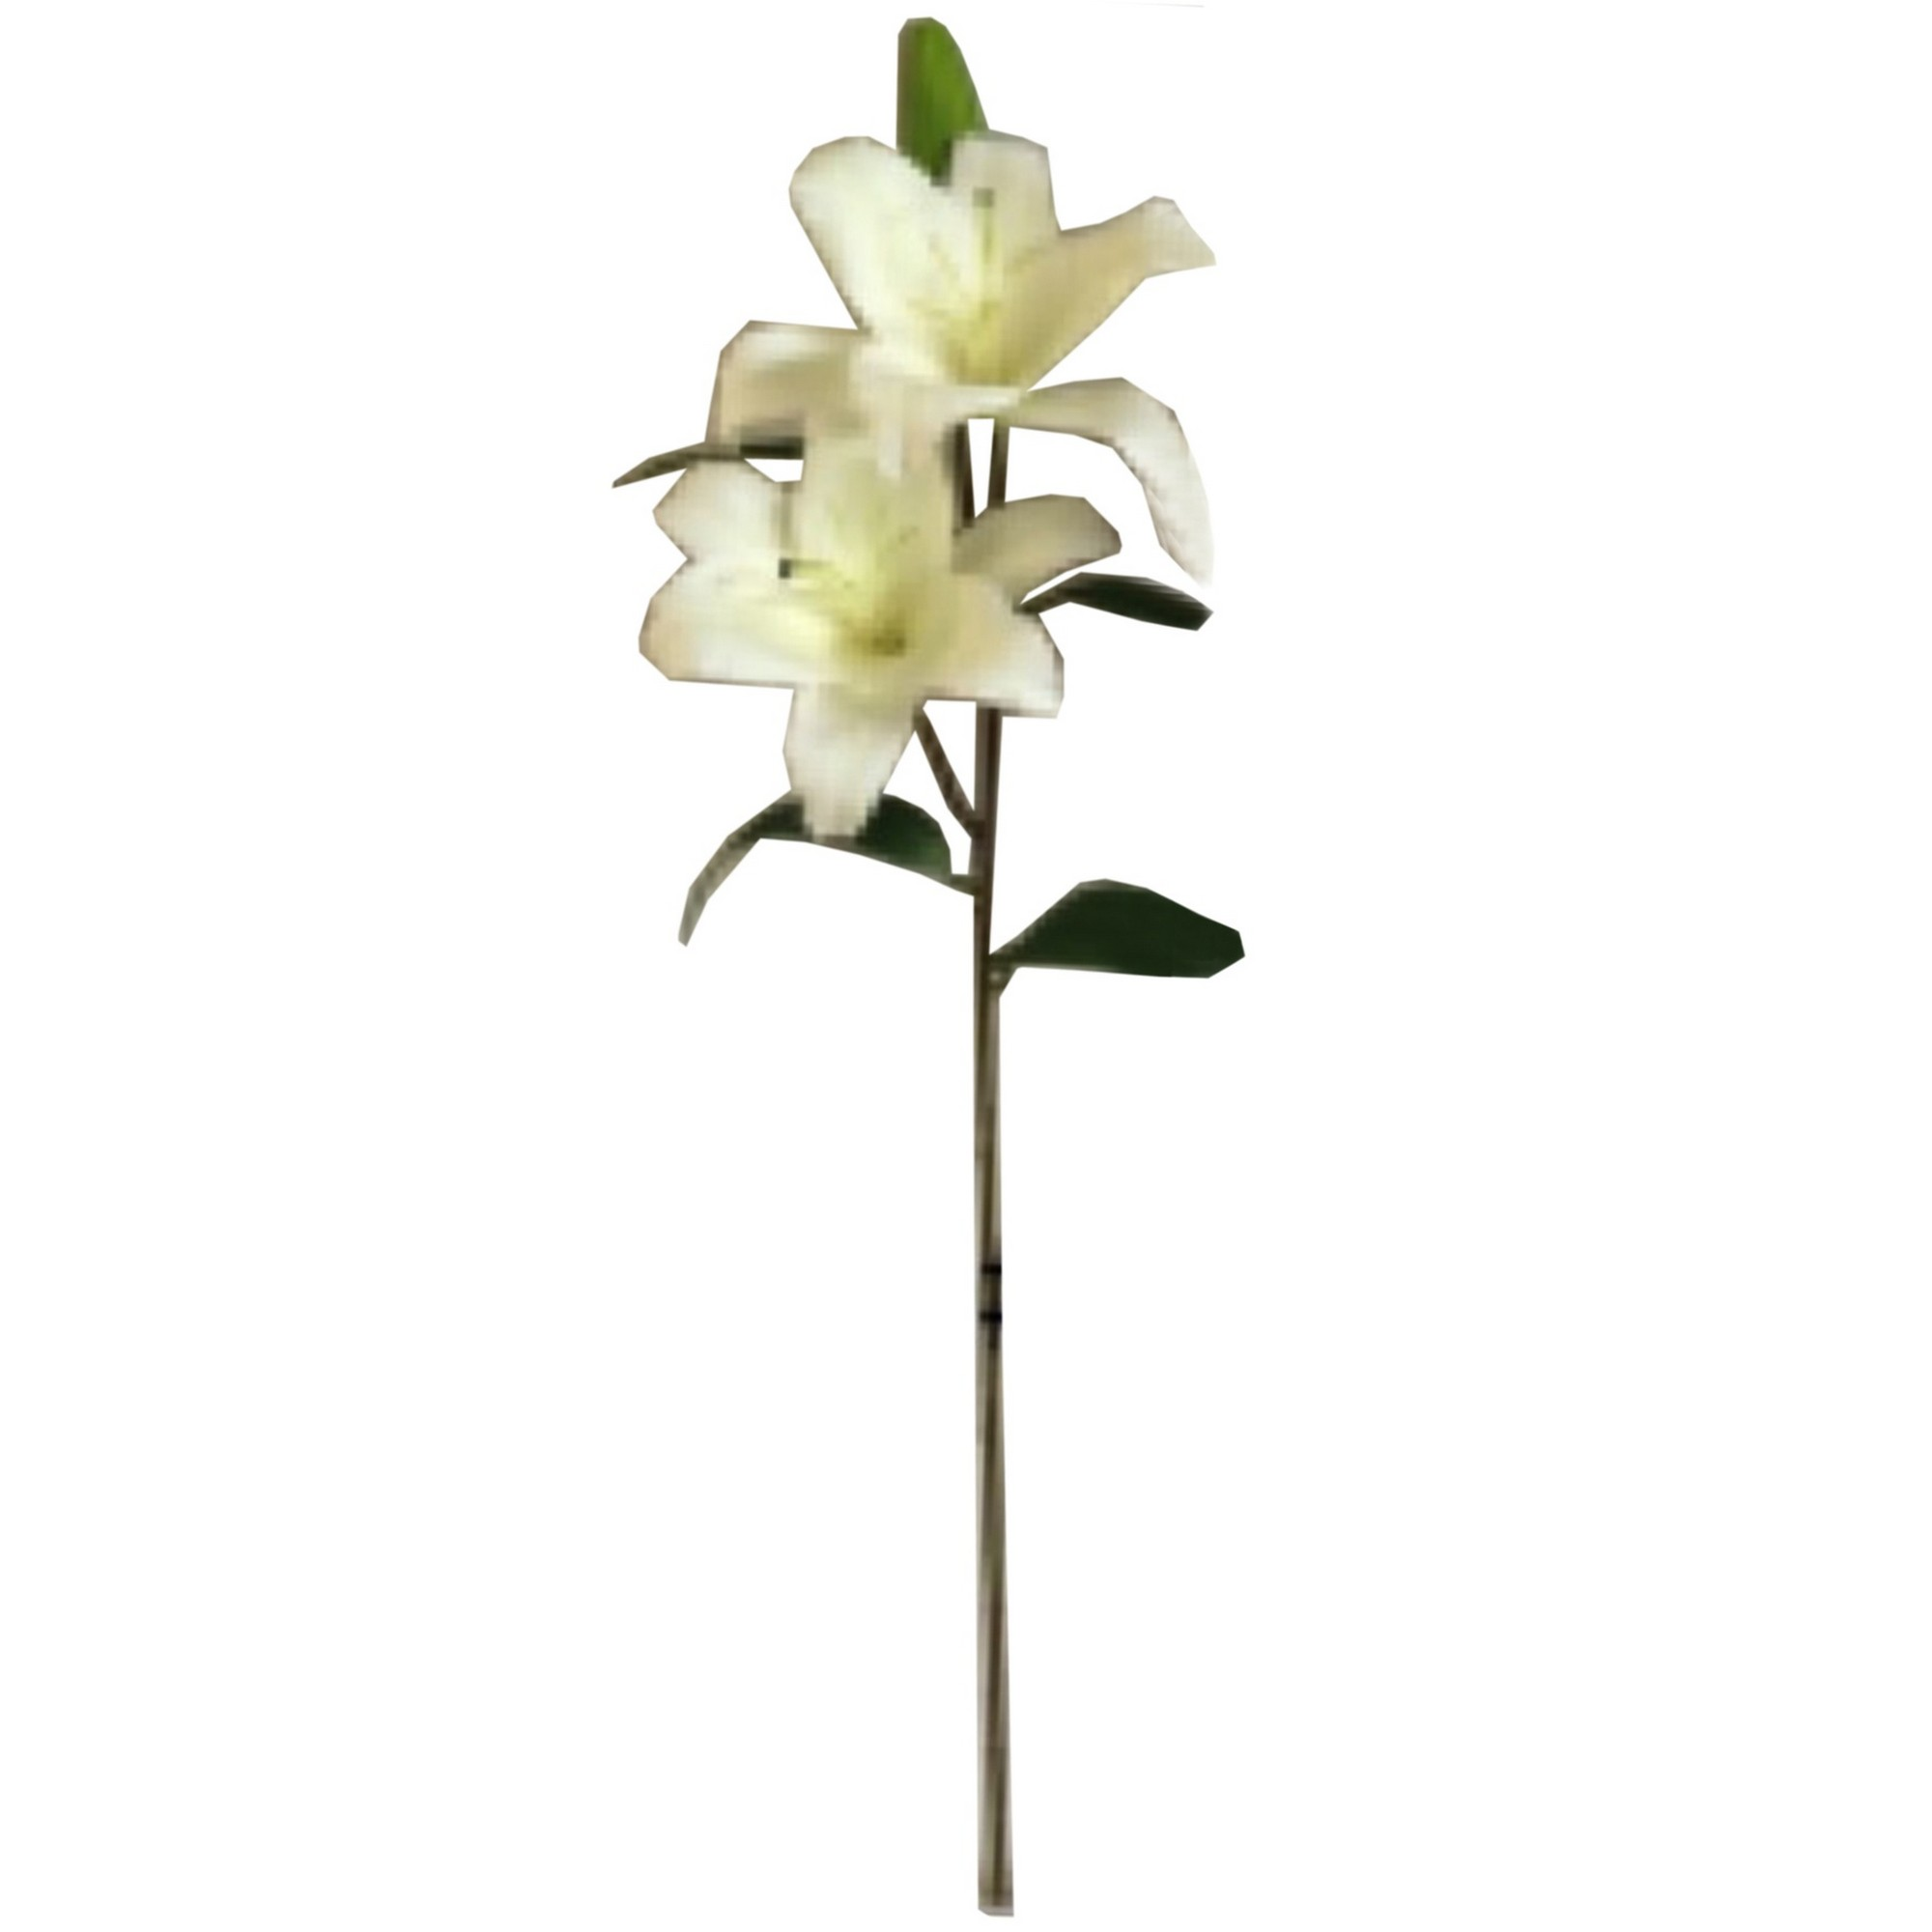 Hill interiors single artificial white lily flower stem ebay hill interiors single artificial white lily flower stem hi1995 izmirmasajfo